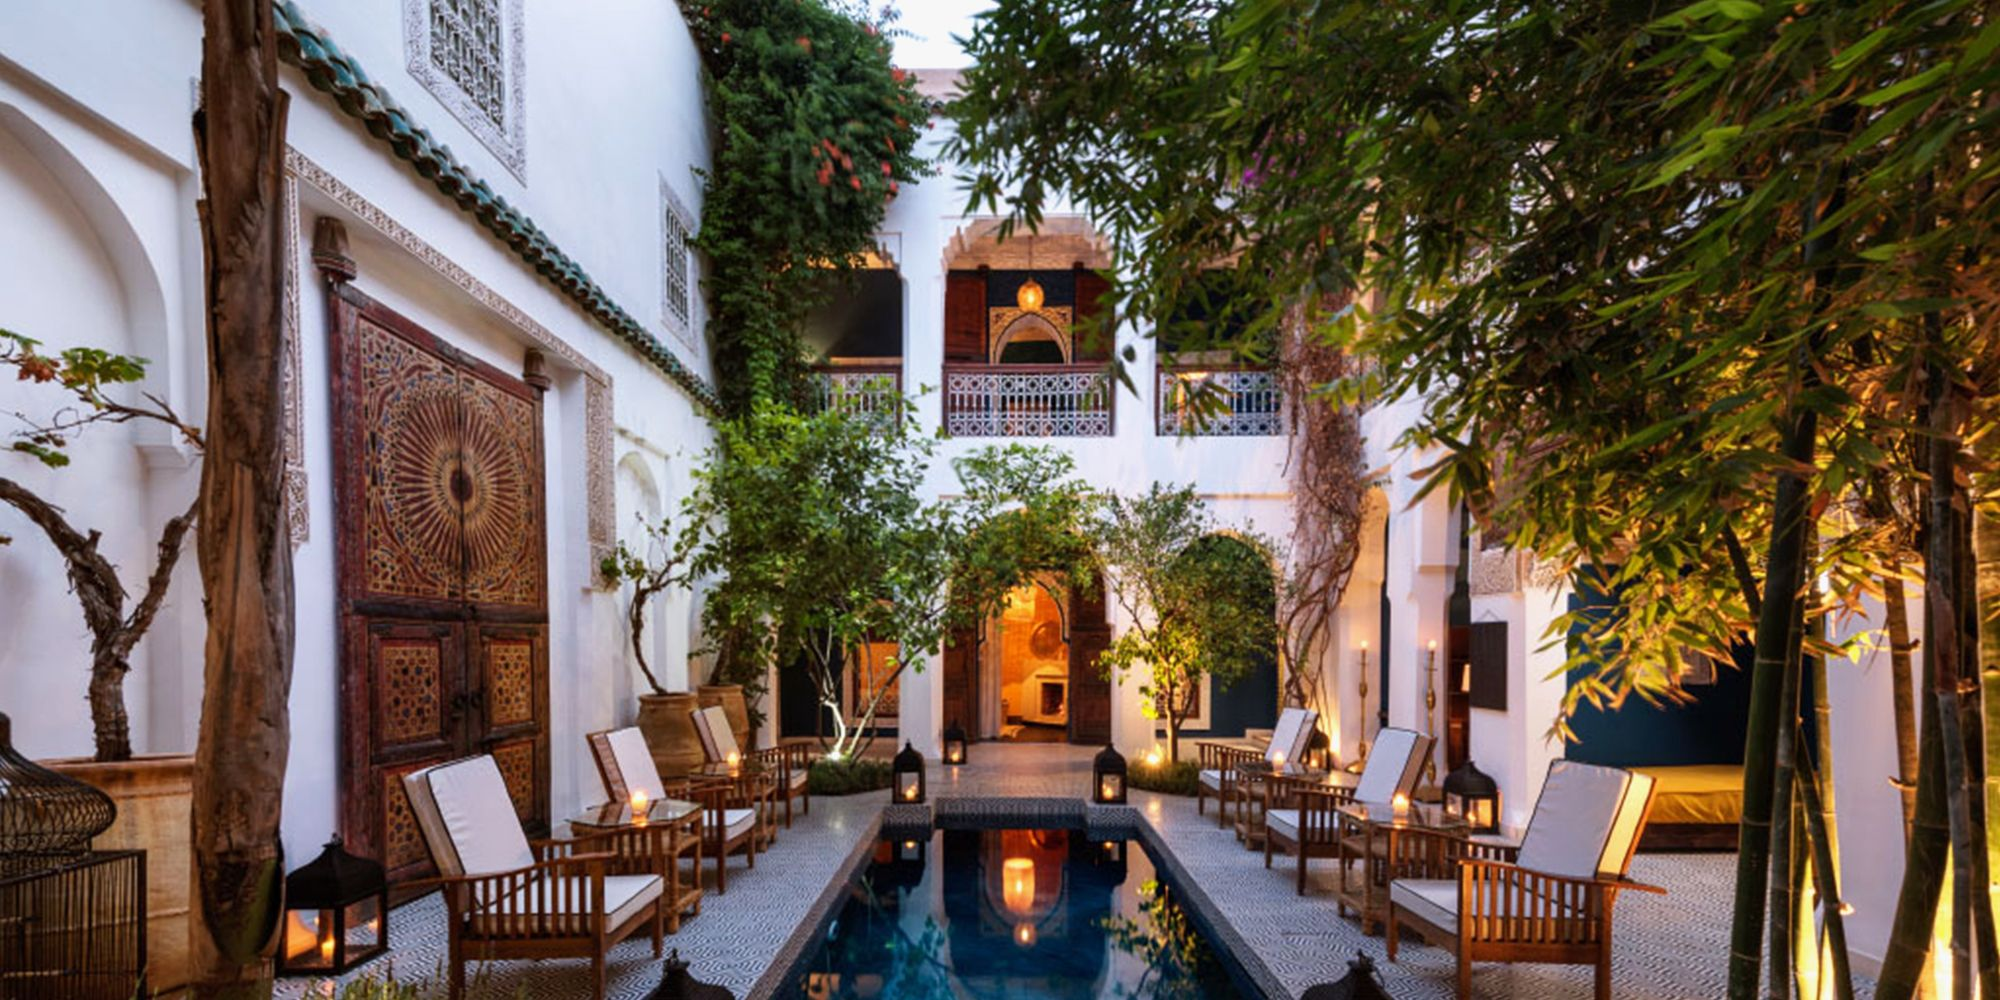 10 Most Beautiful Riads In Marrakech Luxury Marrakech Riads To Book In 2018